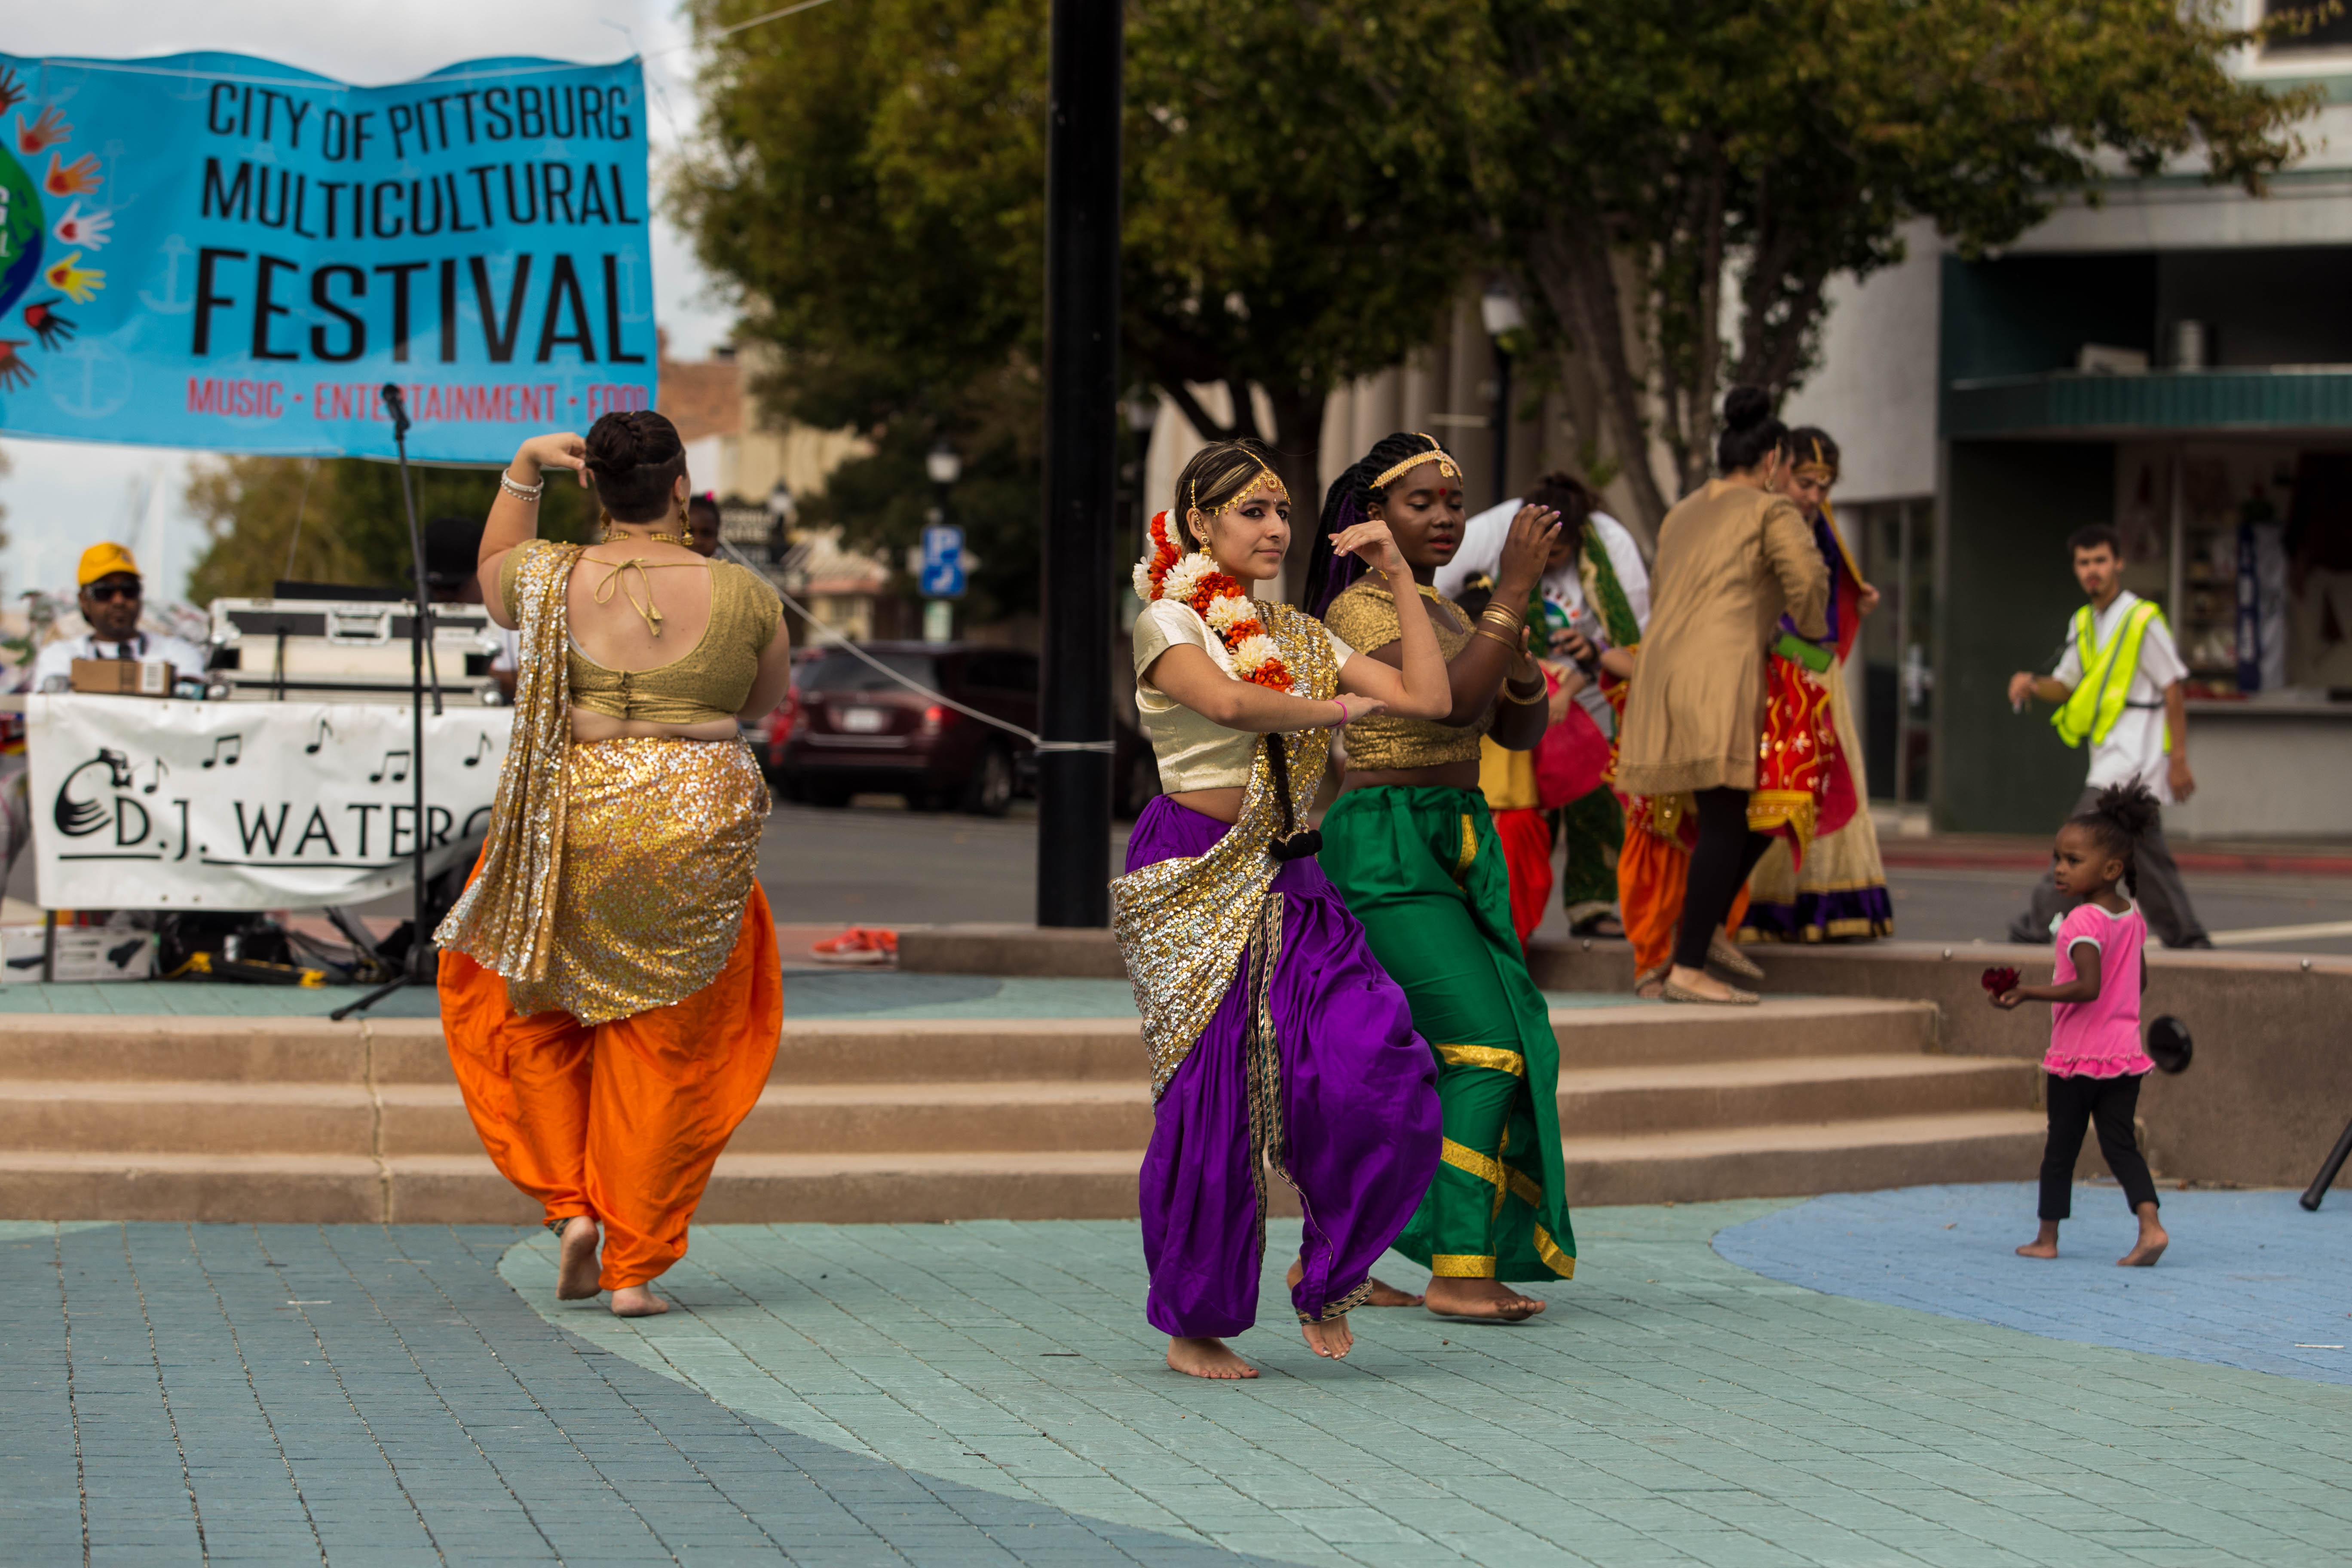 CITY_PITTSBURG_MULTICULTURAL_OCTOBER_2016 (692)